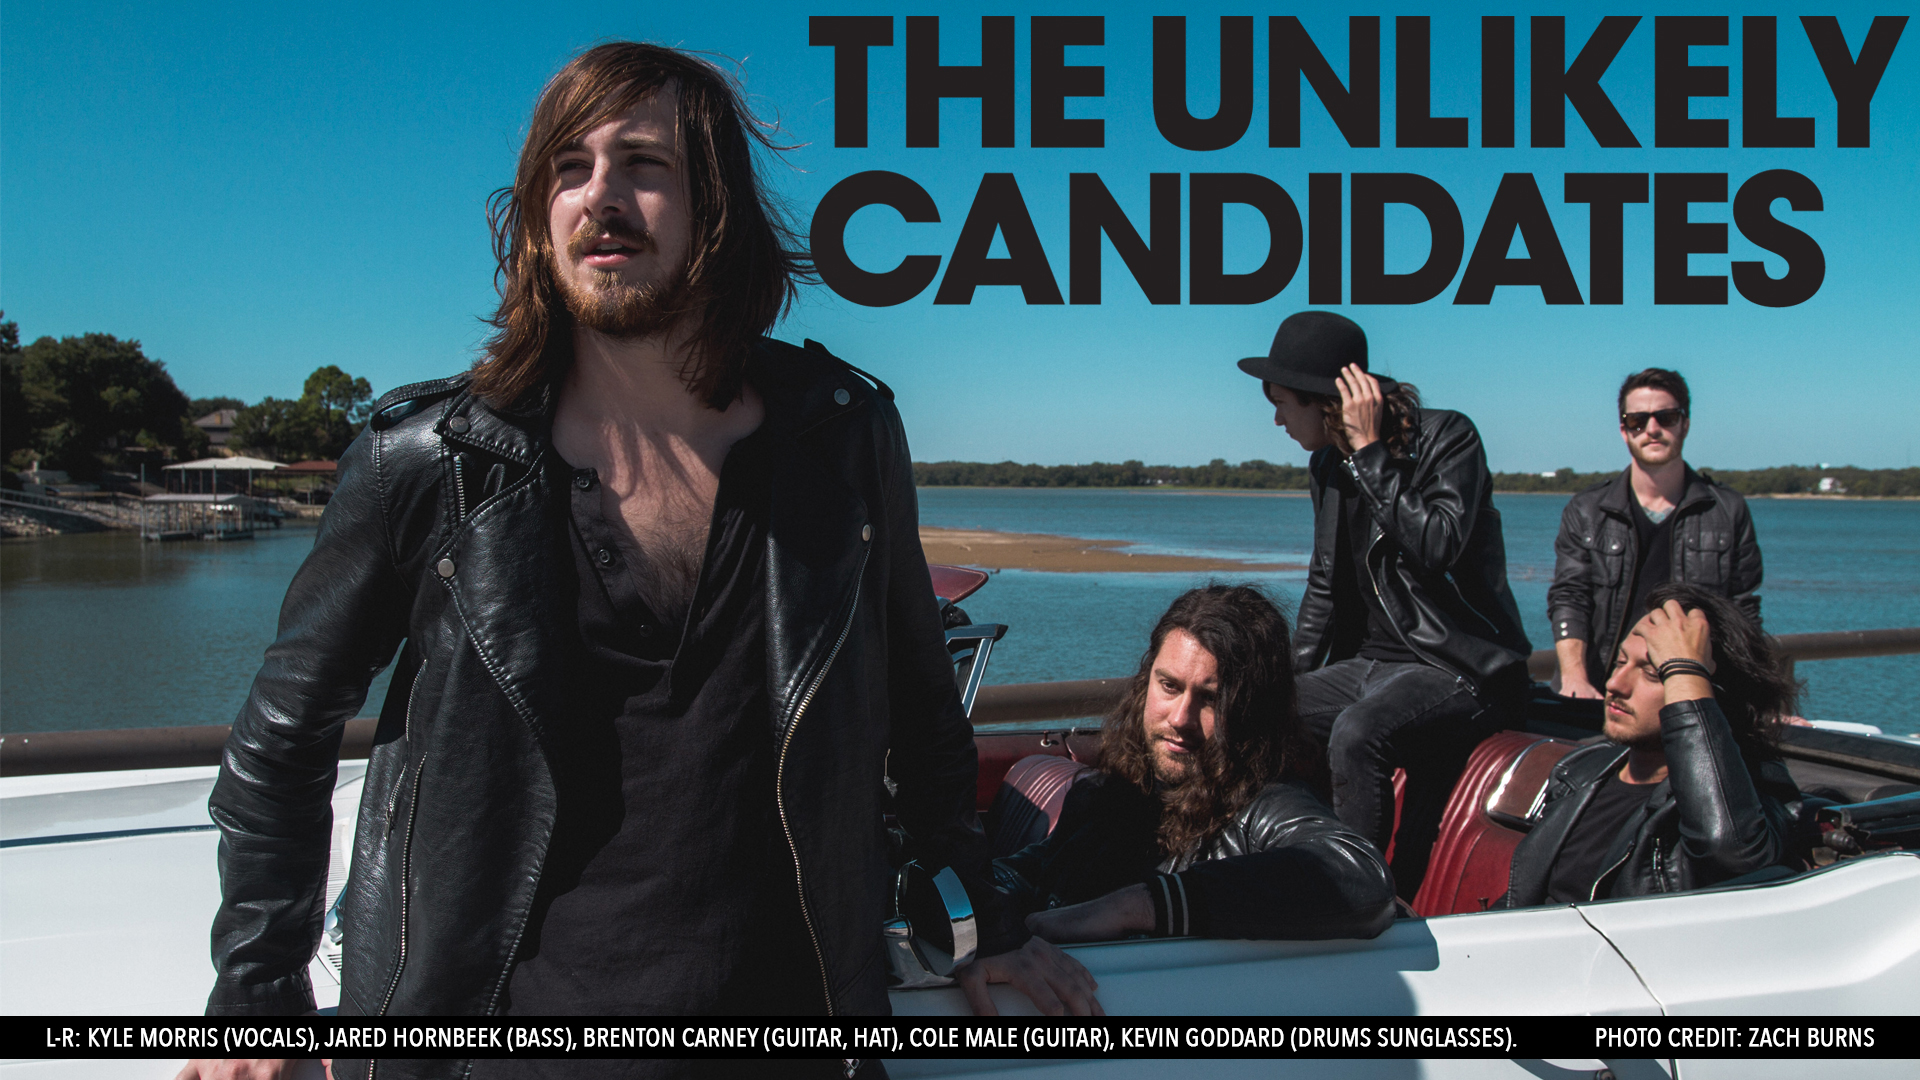 The Unlikely Candidates New Album + Tour